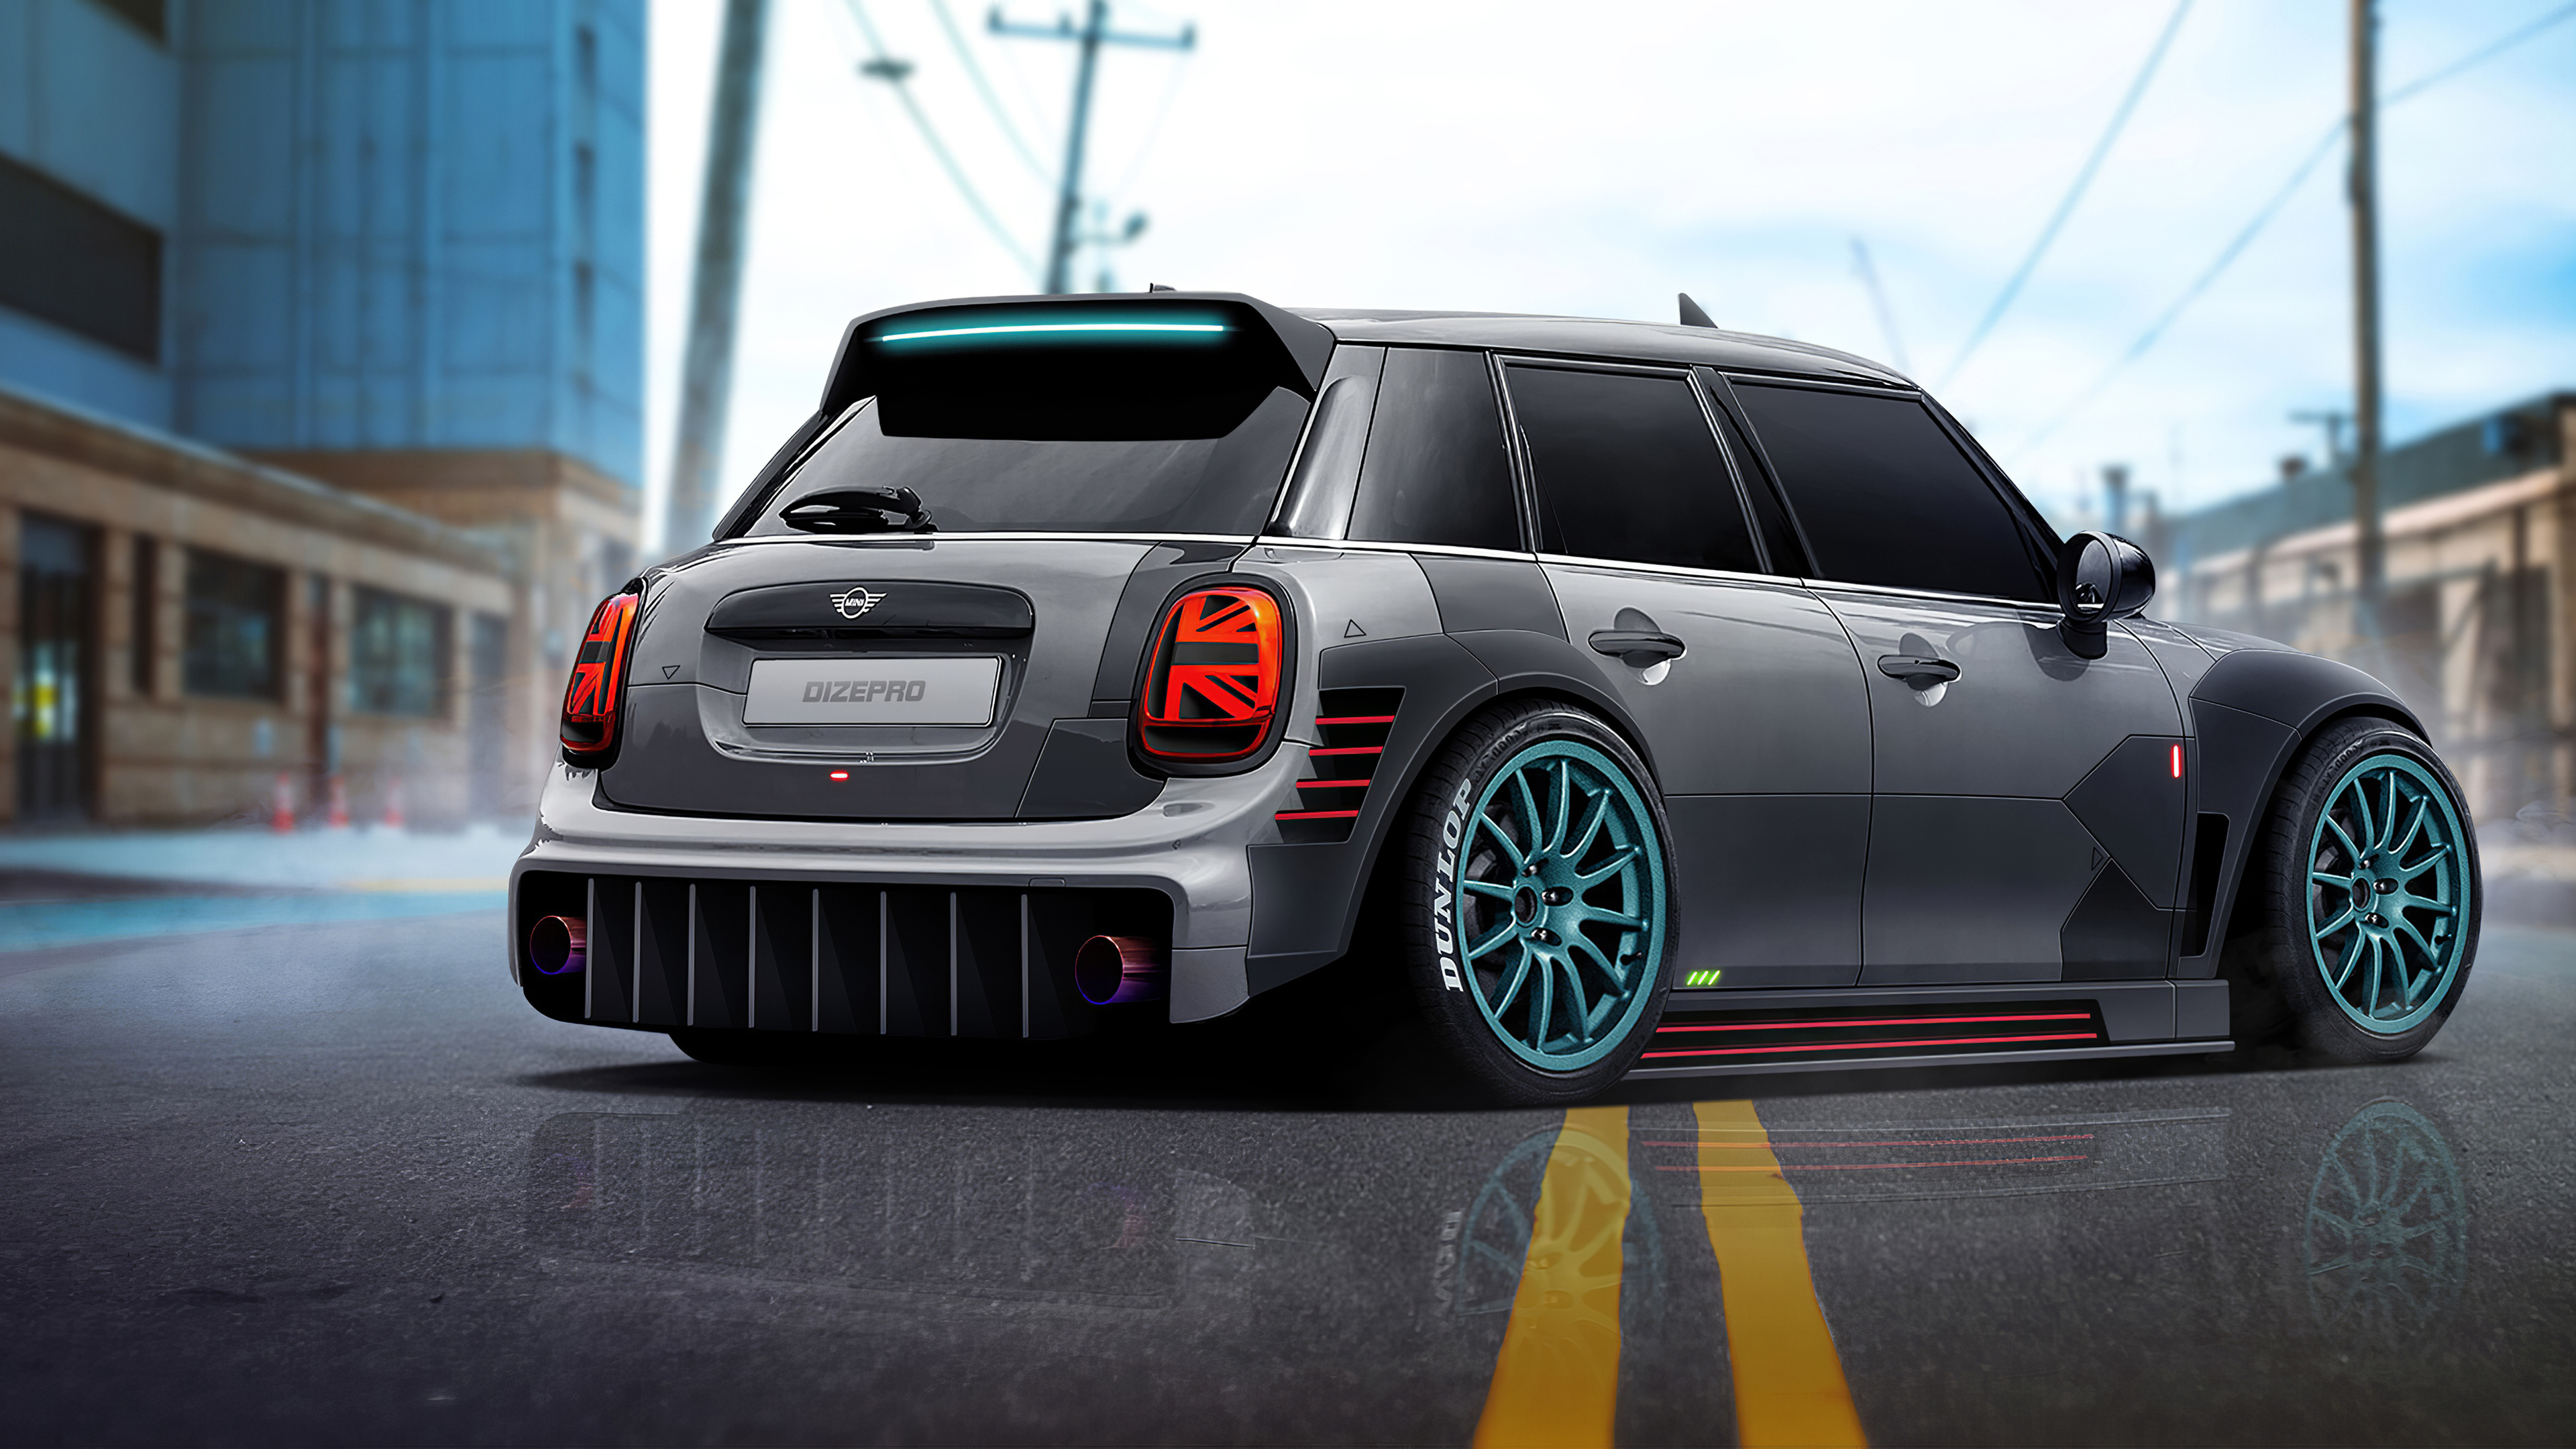 mini cooper digital art 1572660904 - Mini Cooper Digital Art - mini cooper wallpapers, hd-wallpapers, digital art wallpapers, cars wallpapers, artwork wallpapers, artstation wallpapers, artist wallpapers, 4k-wallpapers